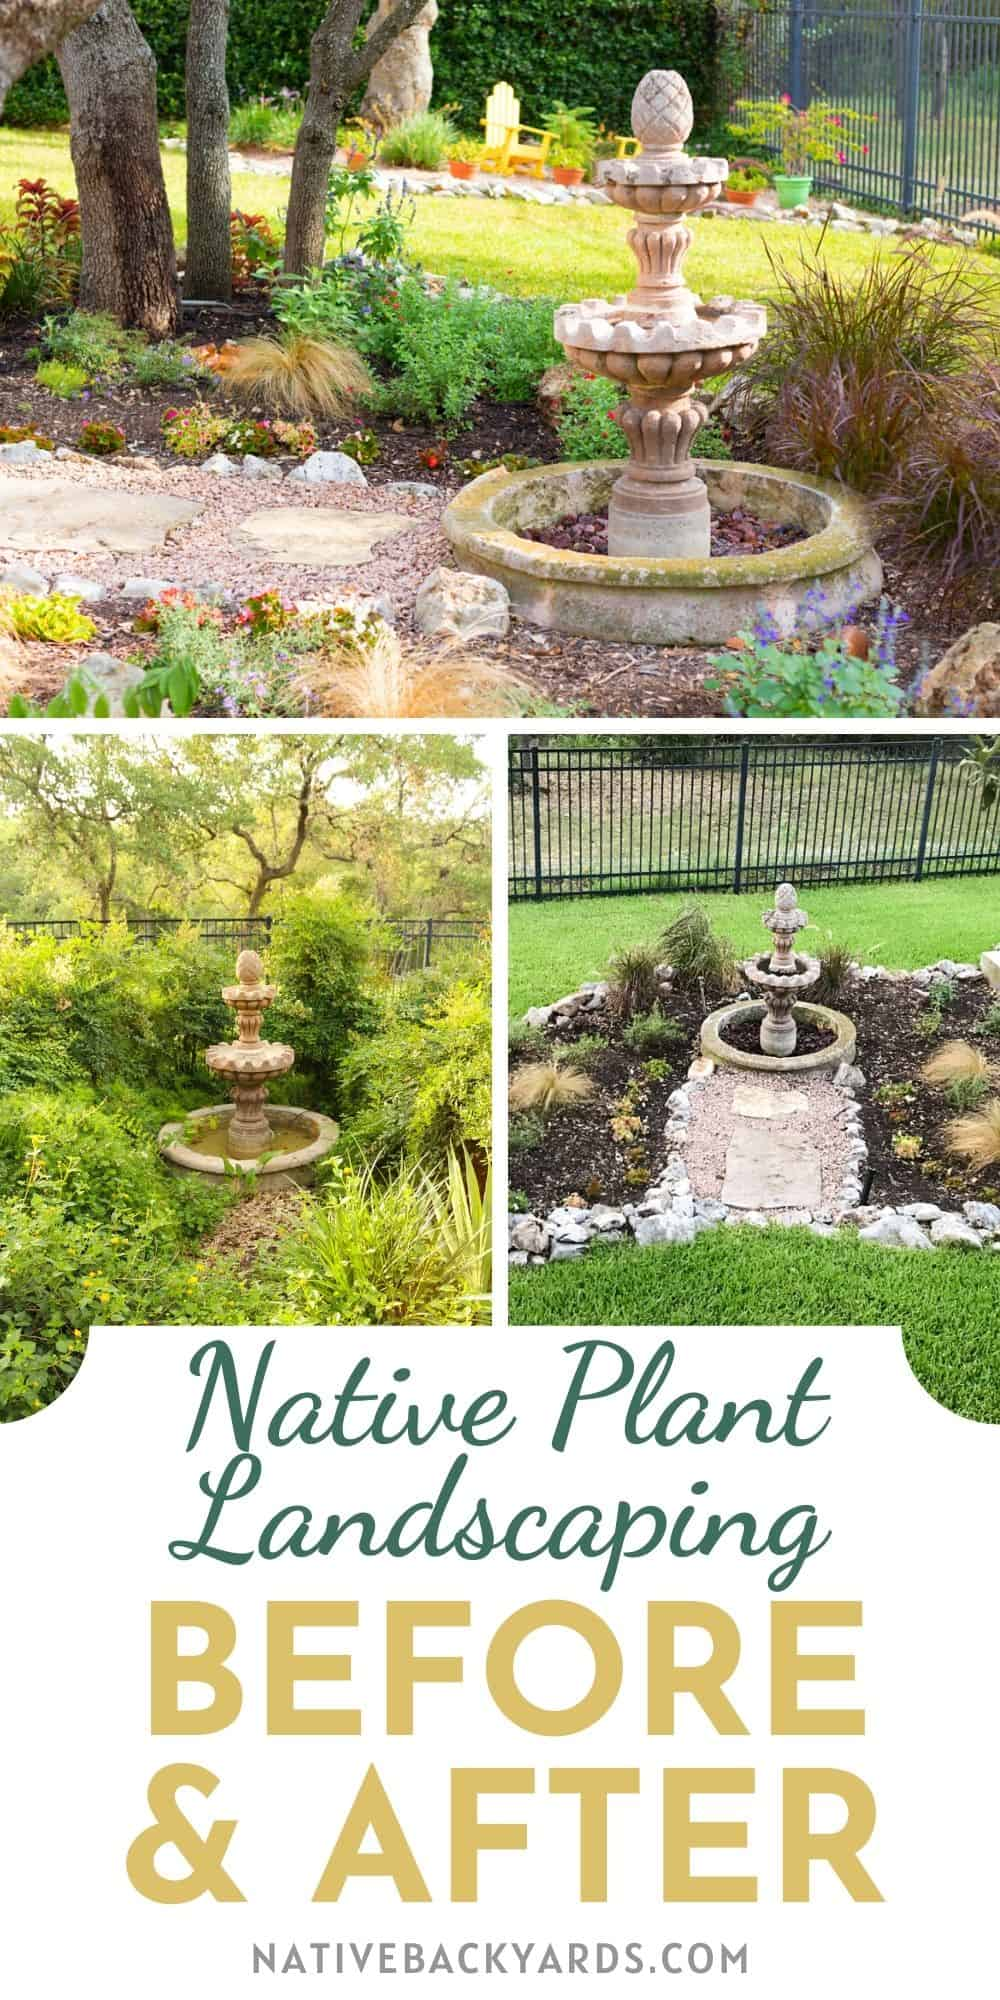 Native plant landscaping before and after